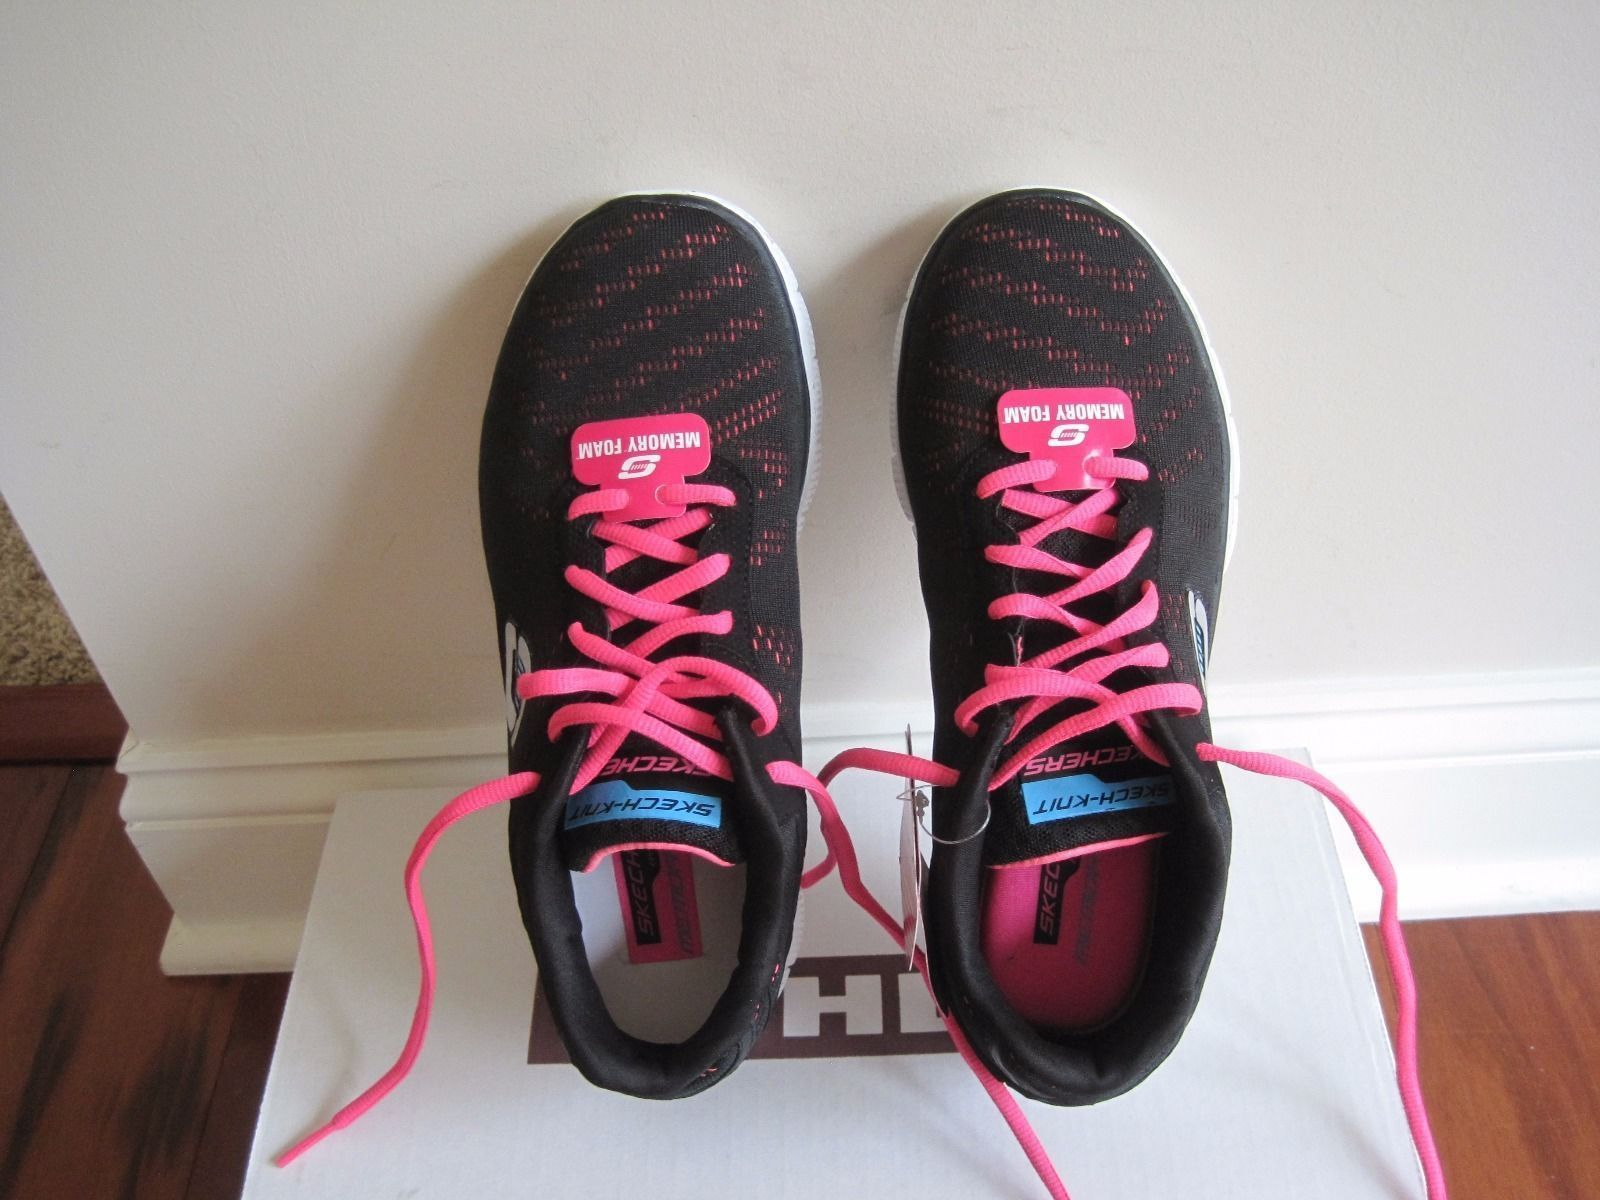 BNIB Skechers Flex Appeal First Glance Women Cross-Trainers, Sizes 6.5/7, $69.99